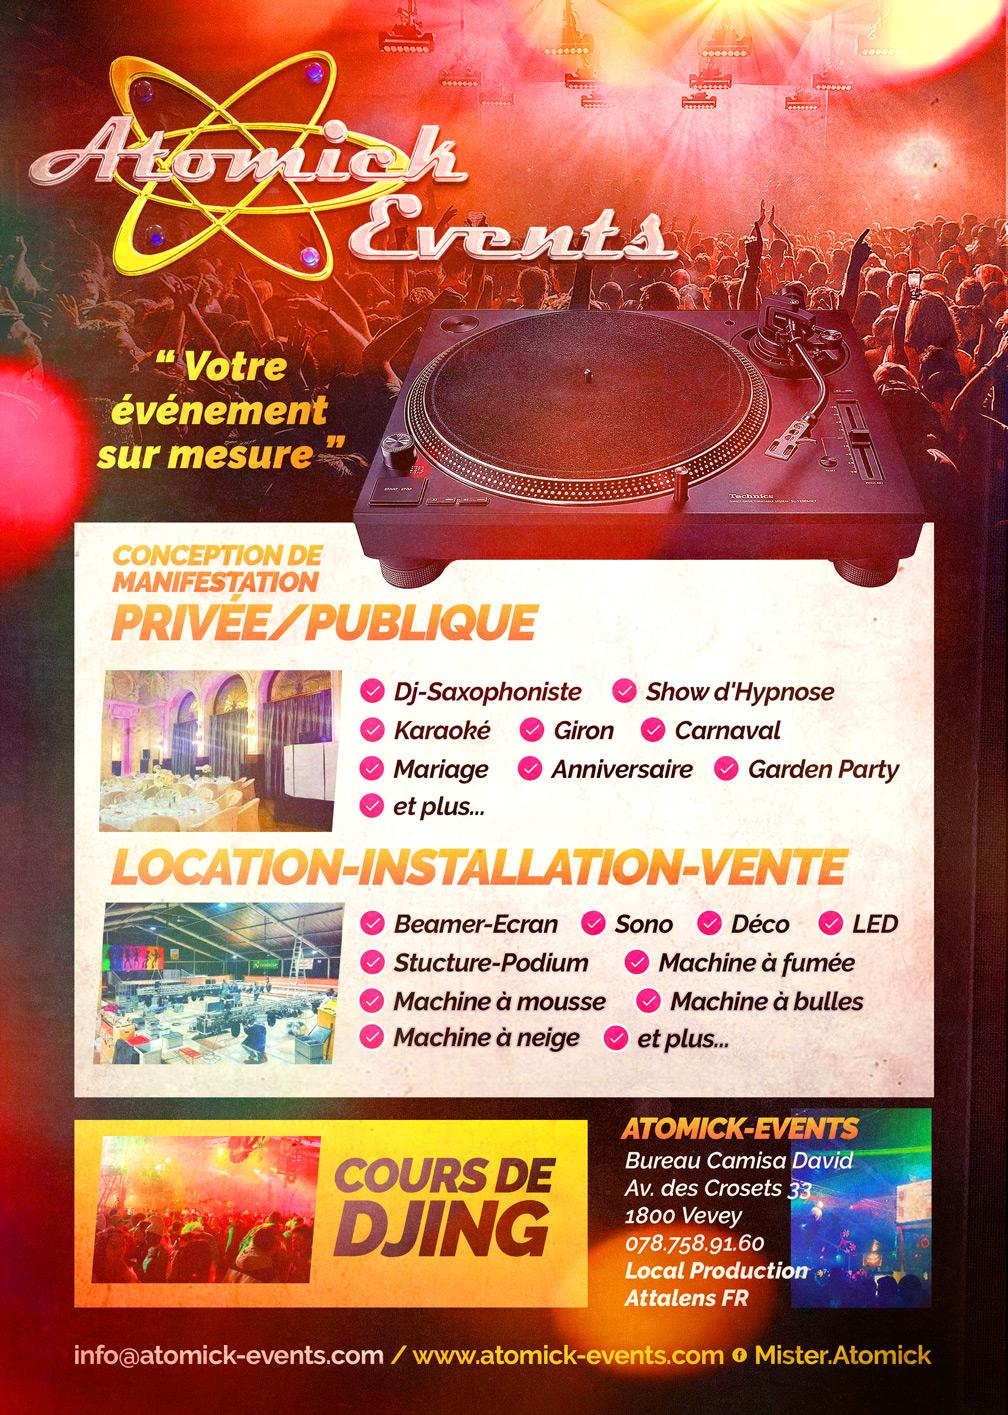 Atomick-Events